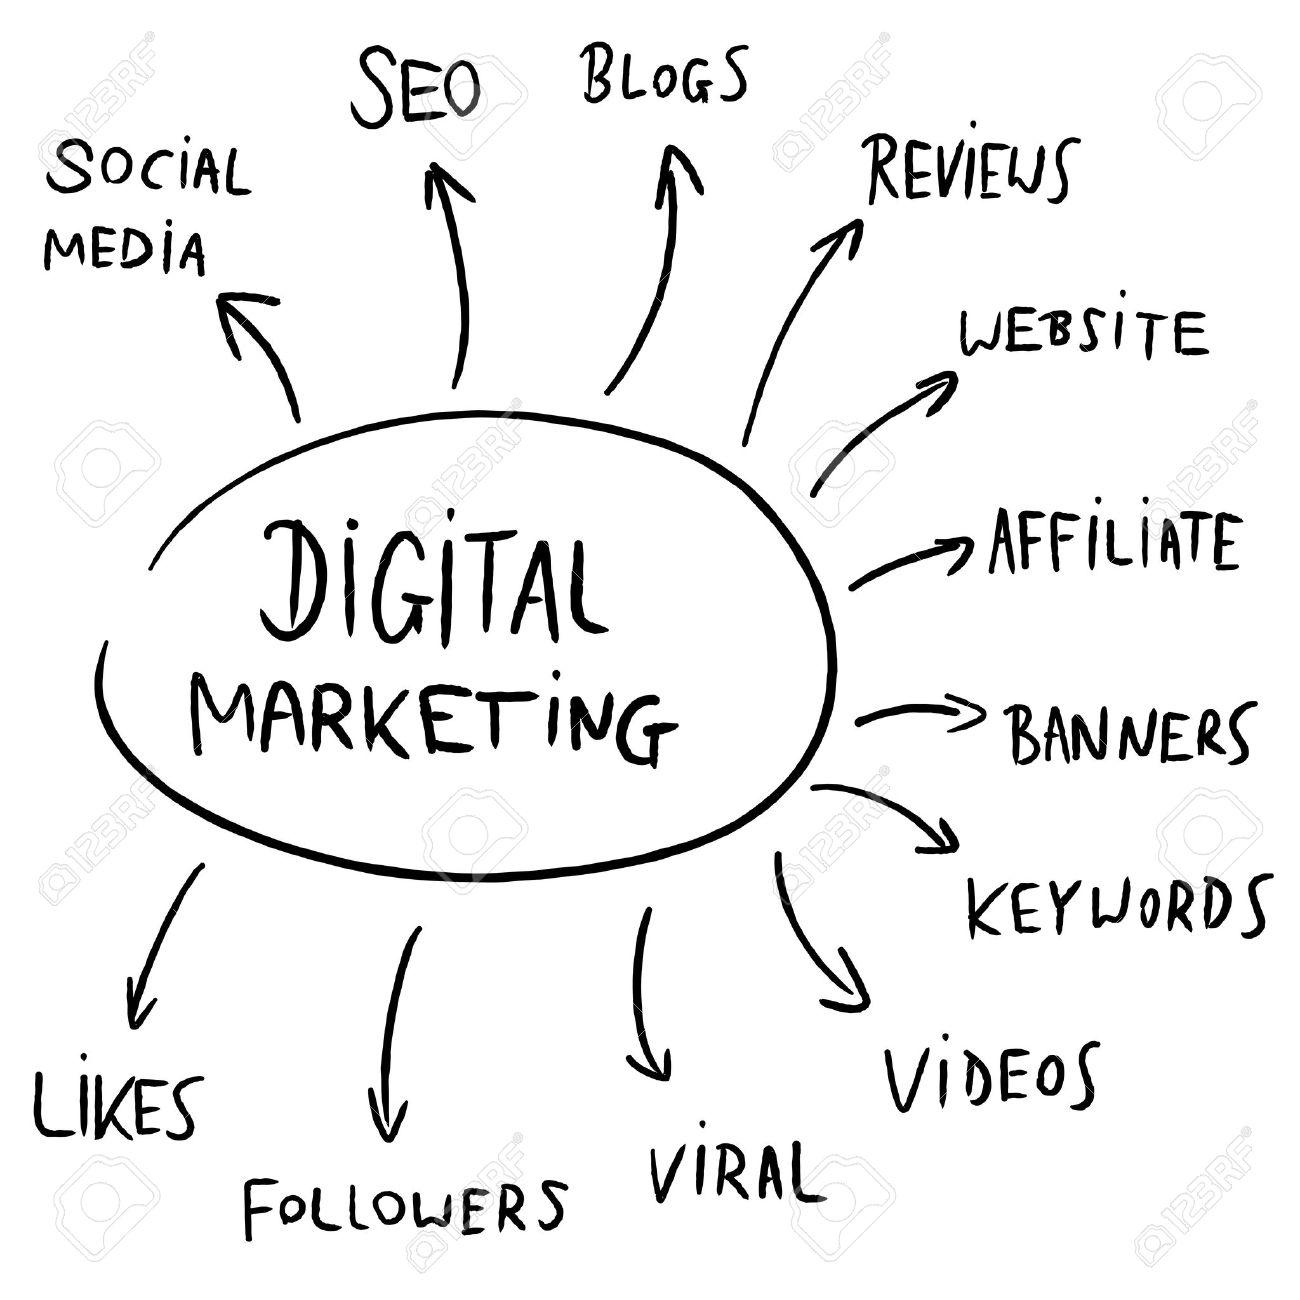 Digital marketing mind map flowchart - text doodle related to internet business advertising. - 42103434